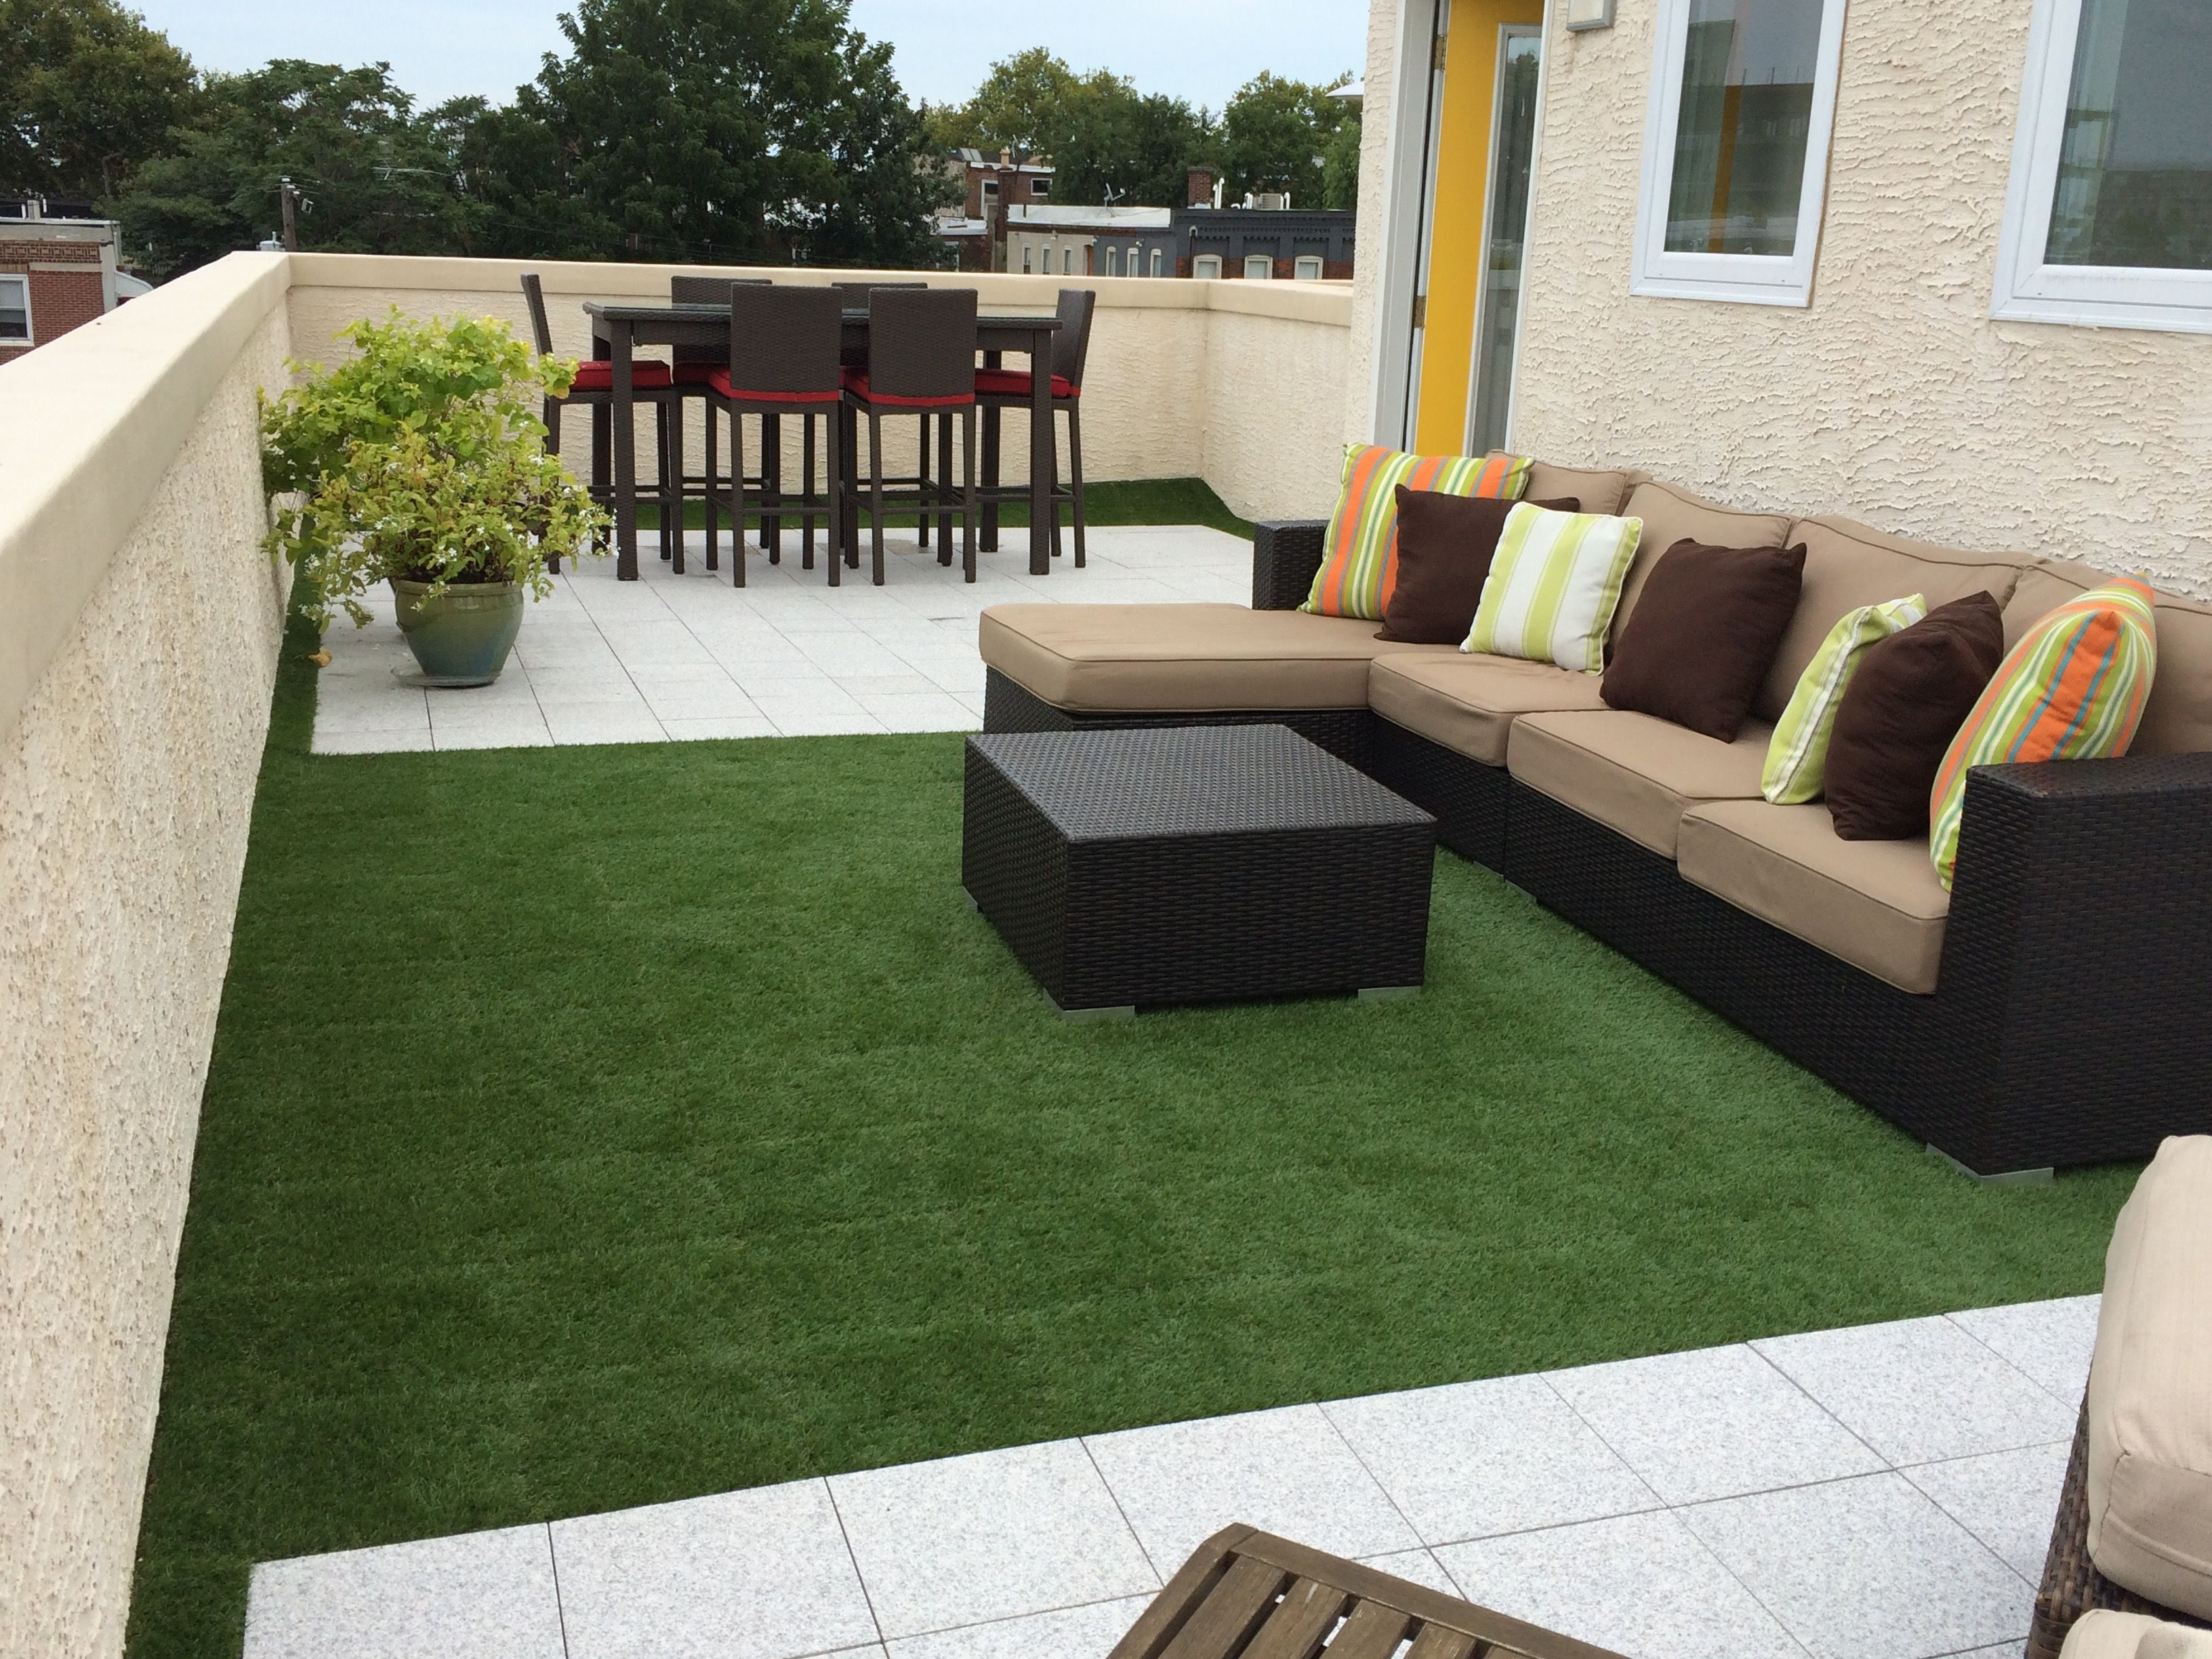 The outdoor modular grass tile is an easy to install snap to her artificial grass turf tile